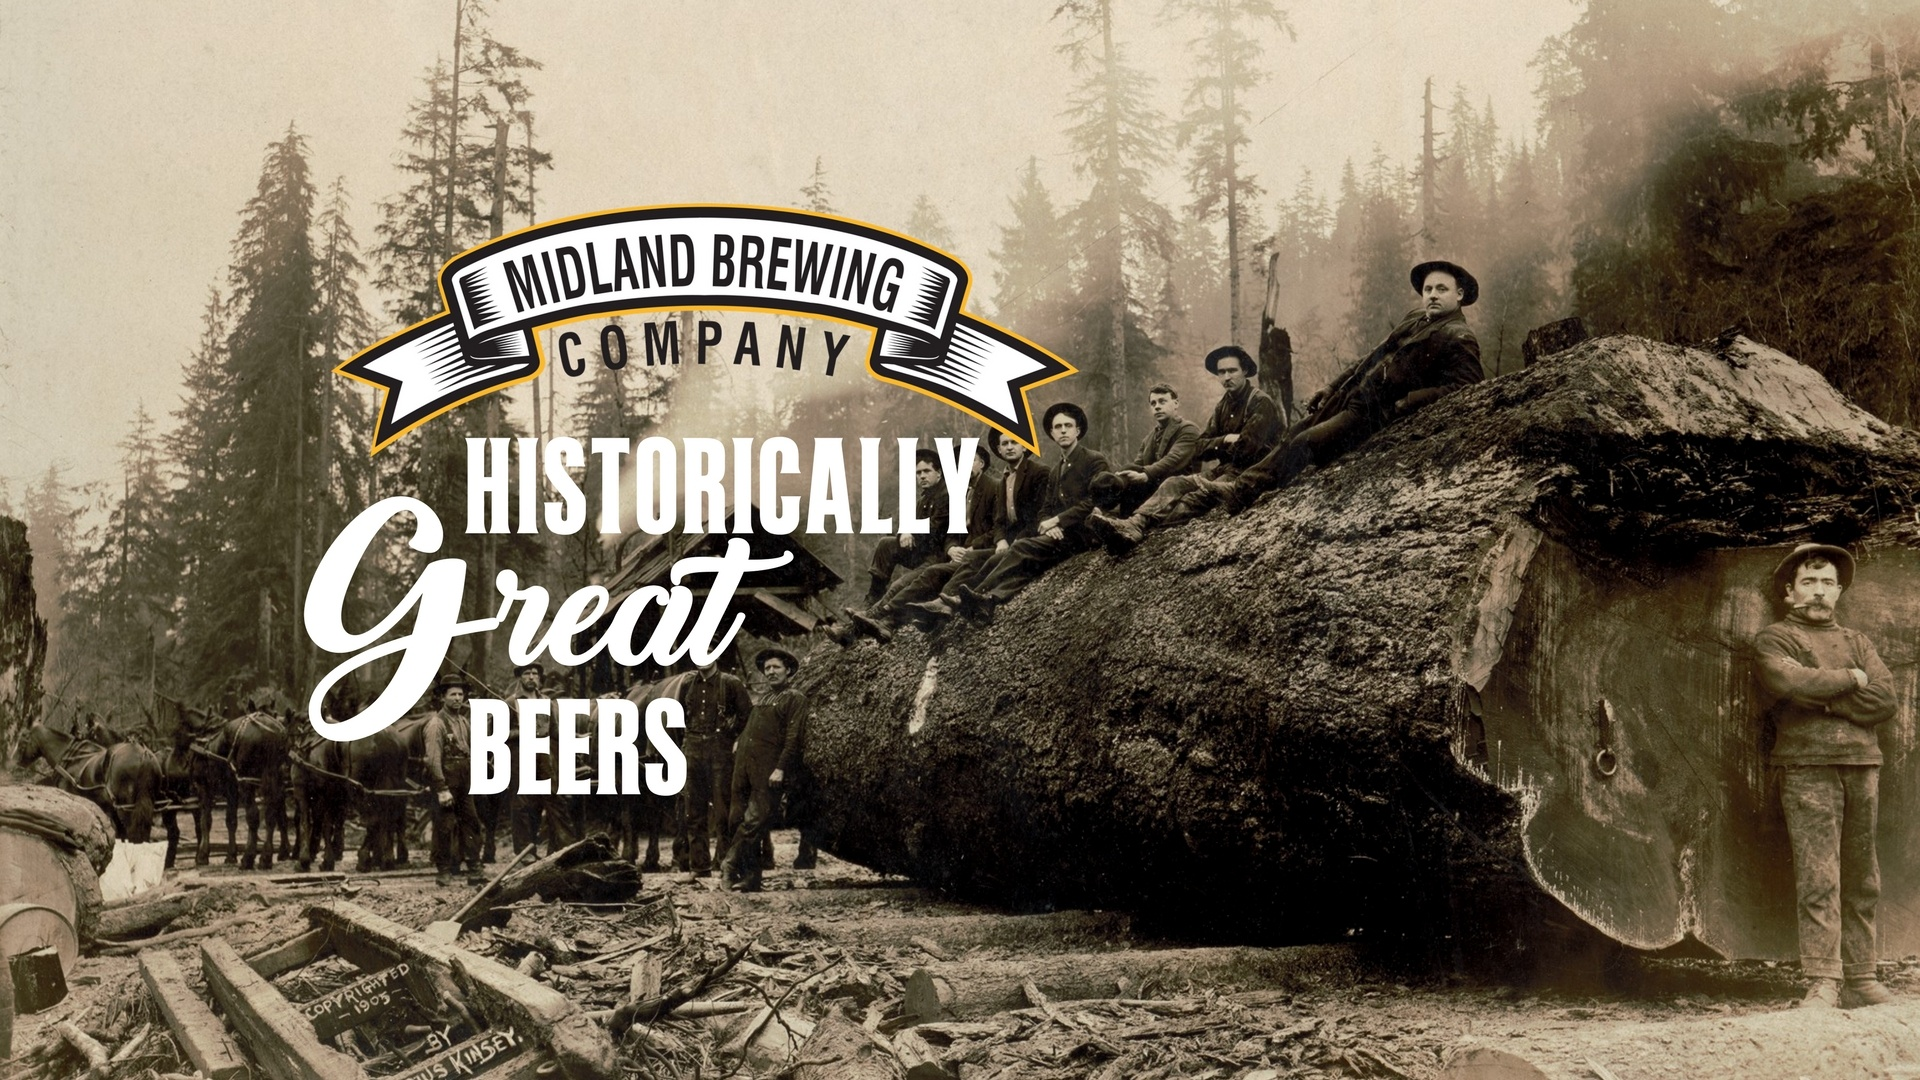 historically great beer